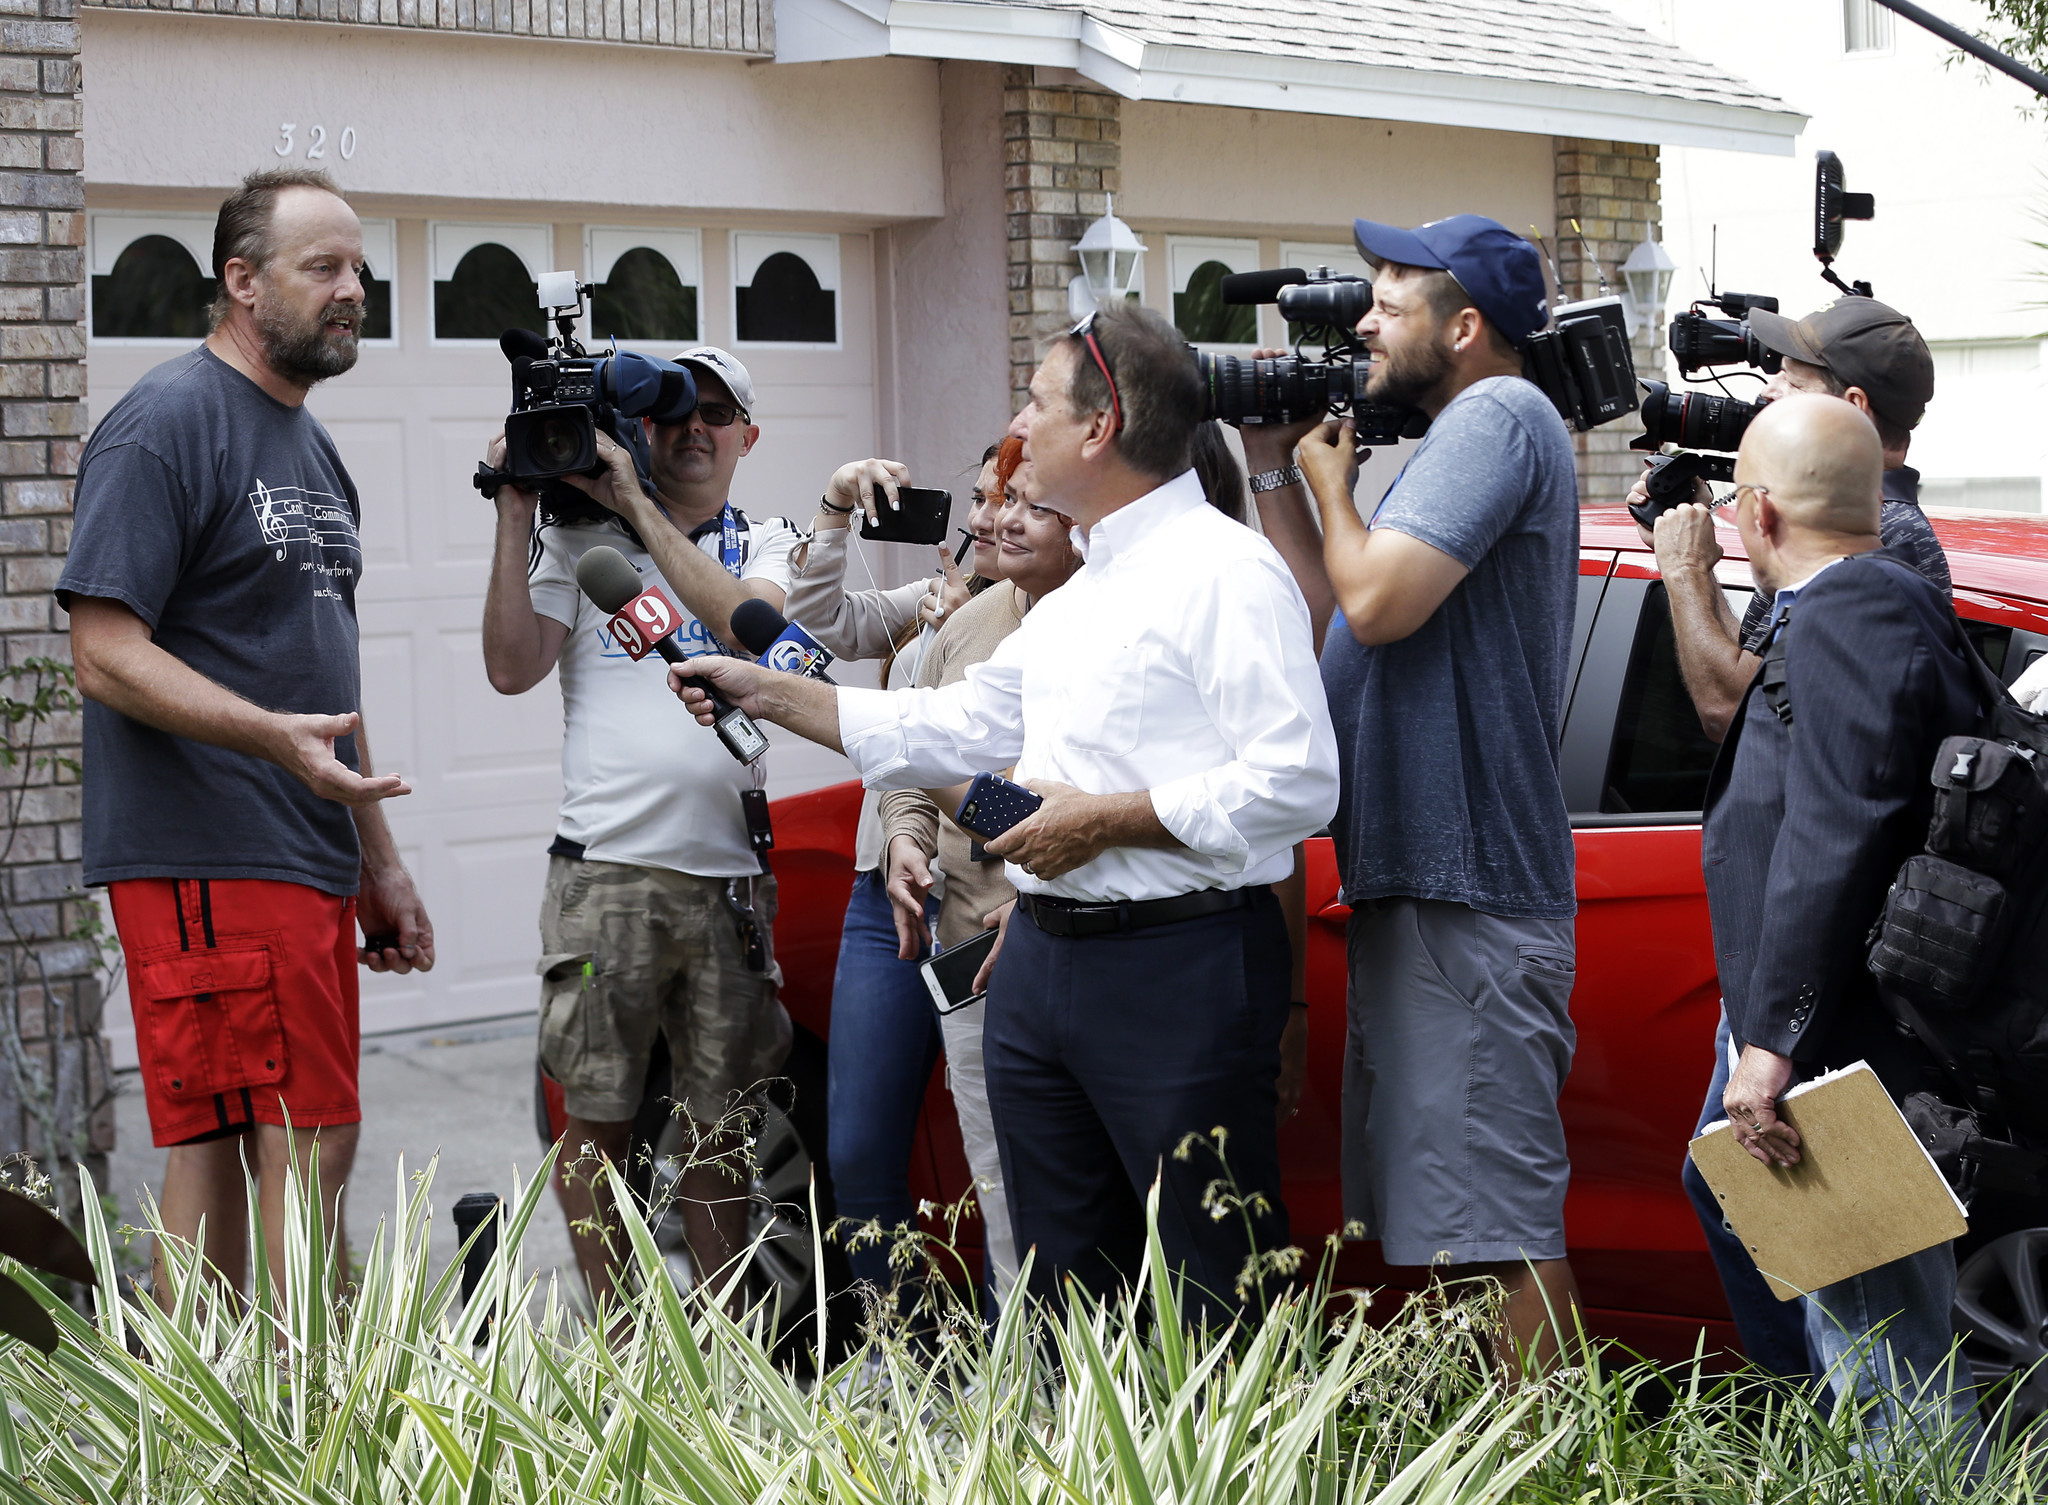 Eric Paddock, the brother of the Las Vegas gunman, speaks to reporters outside his home Monday in Orlando, Fla.